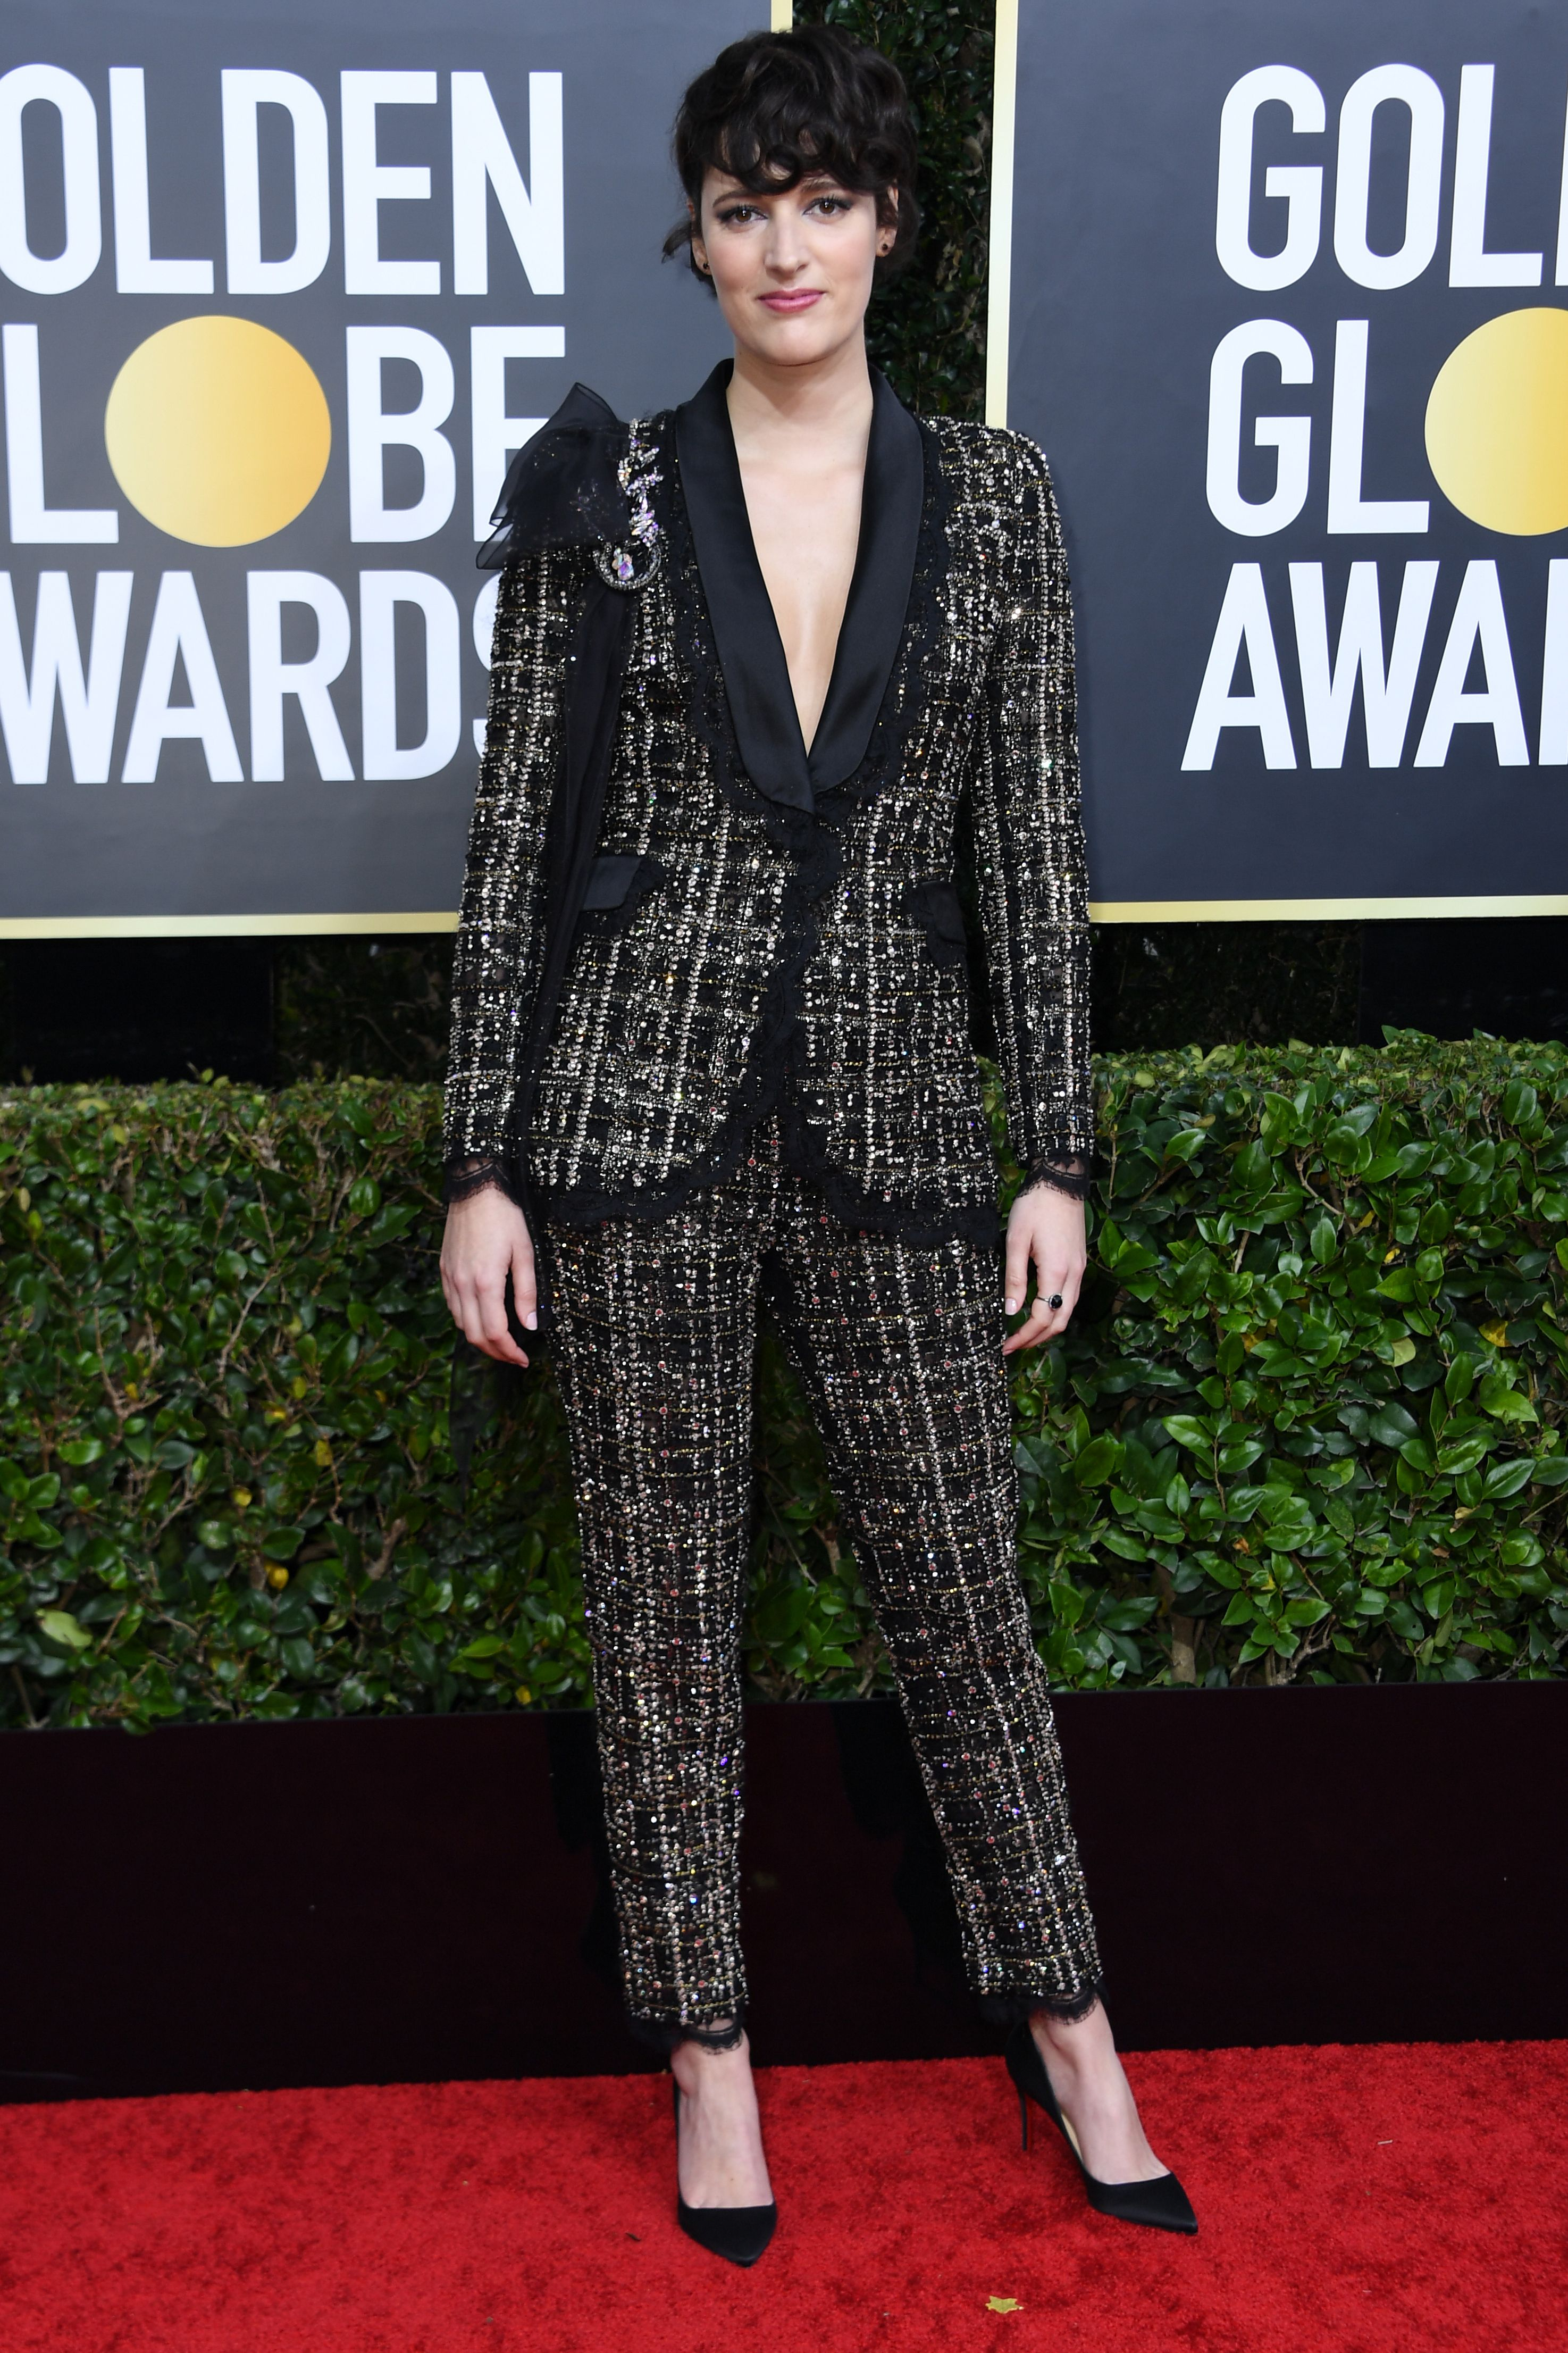 British actress Phoebe Waller-Bridge arrives for the 77th annual Golden Globe Awards on January 5, 2020, at The Beverly Hilton hotel in Beverly Hills, California. (Photo by VALERIE MACON / AFP) (Photo by VALERIE MACON/AFP via Getty Images)